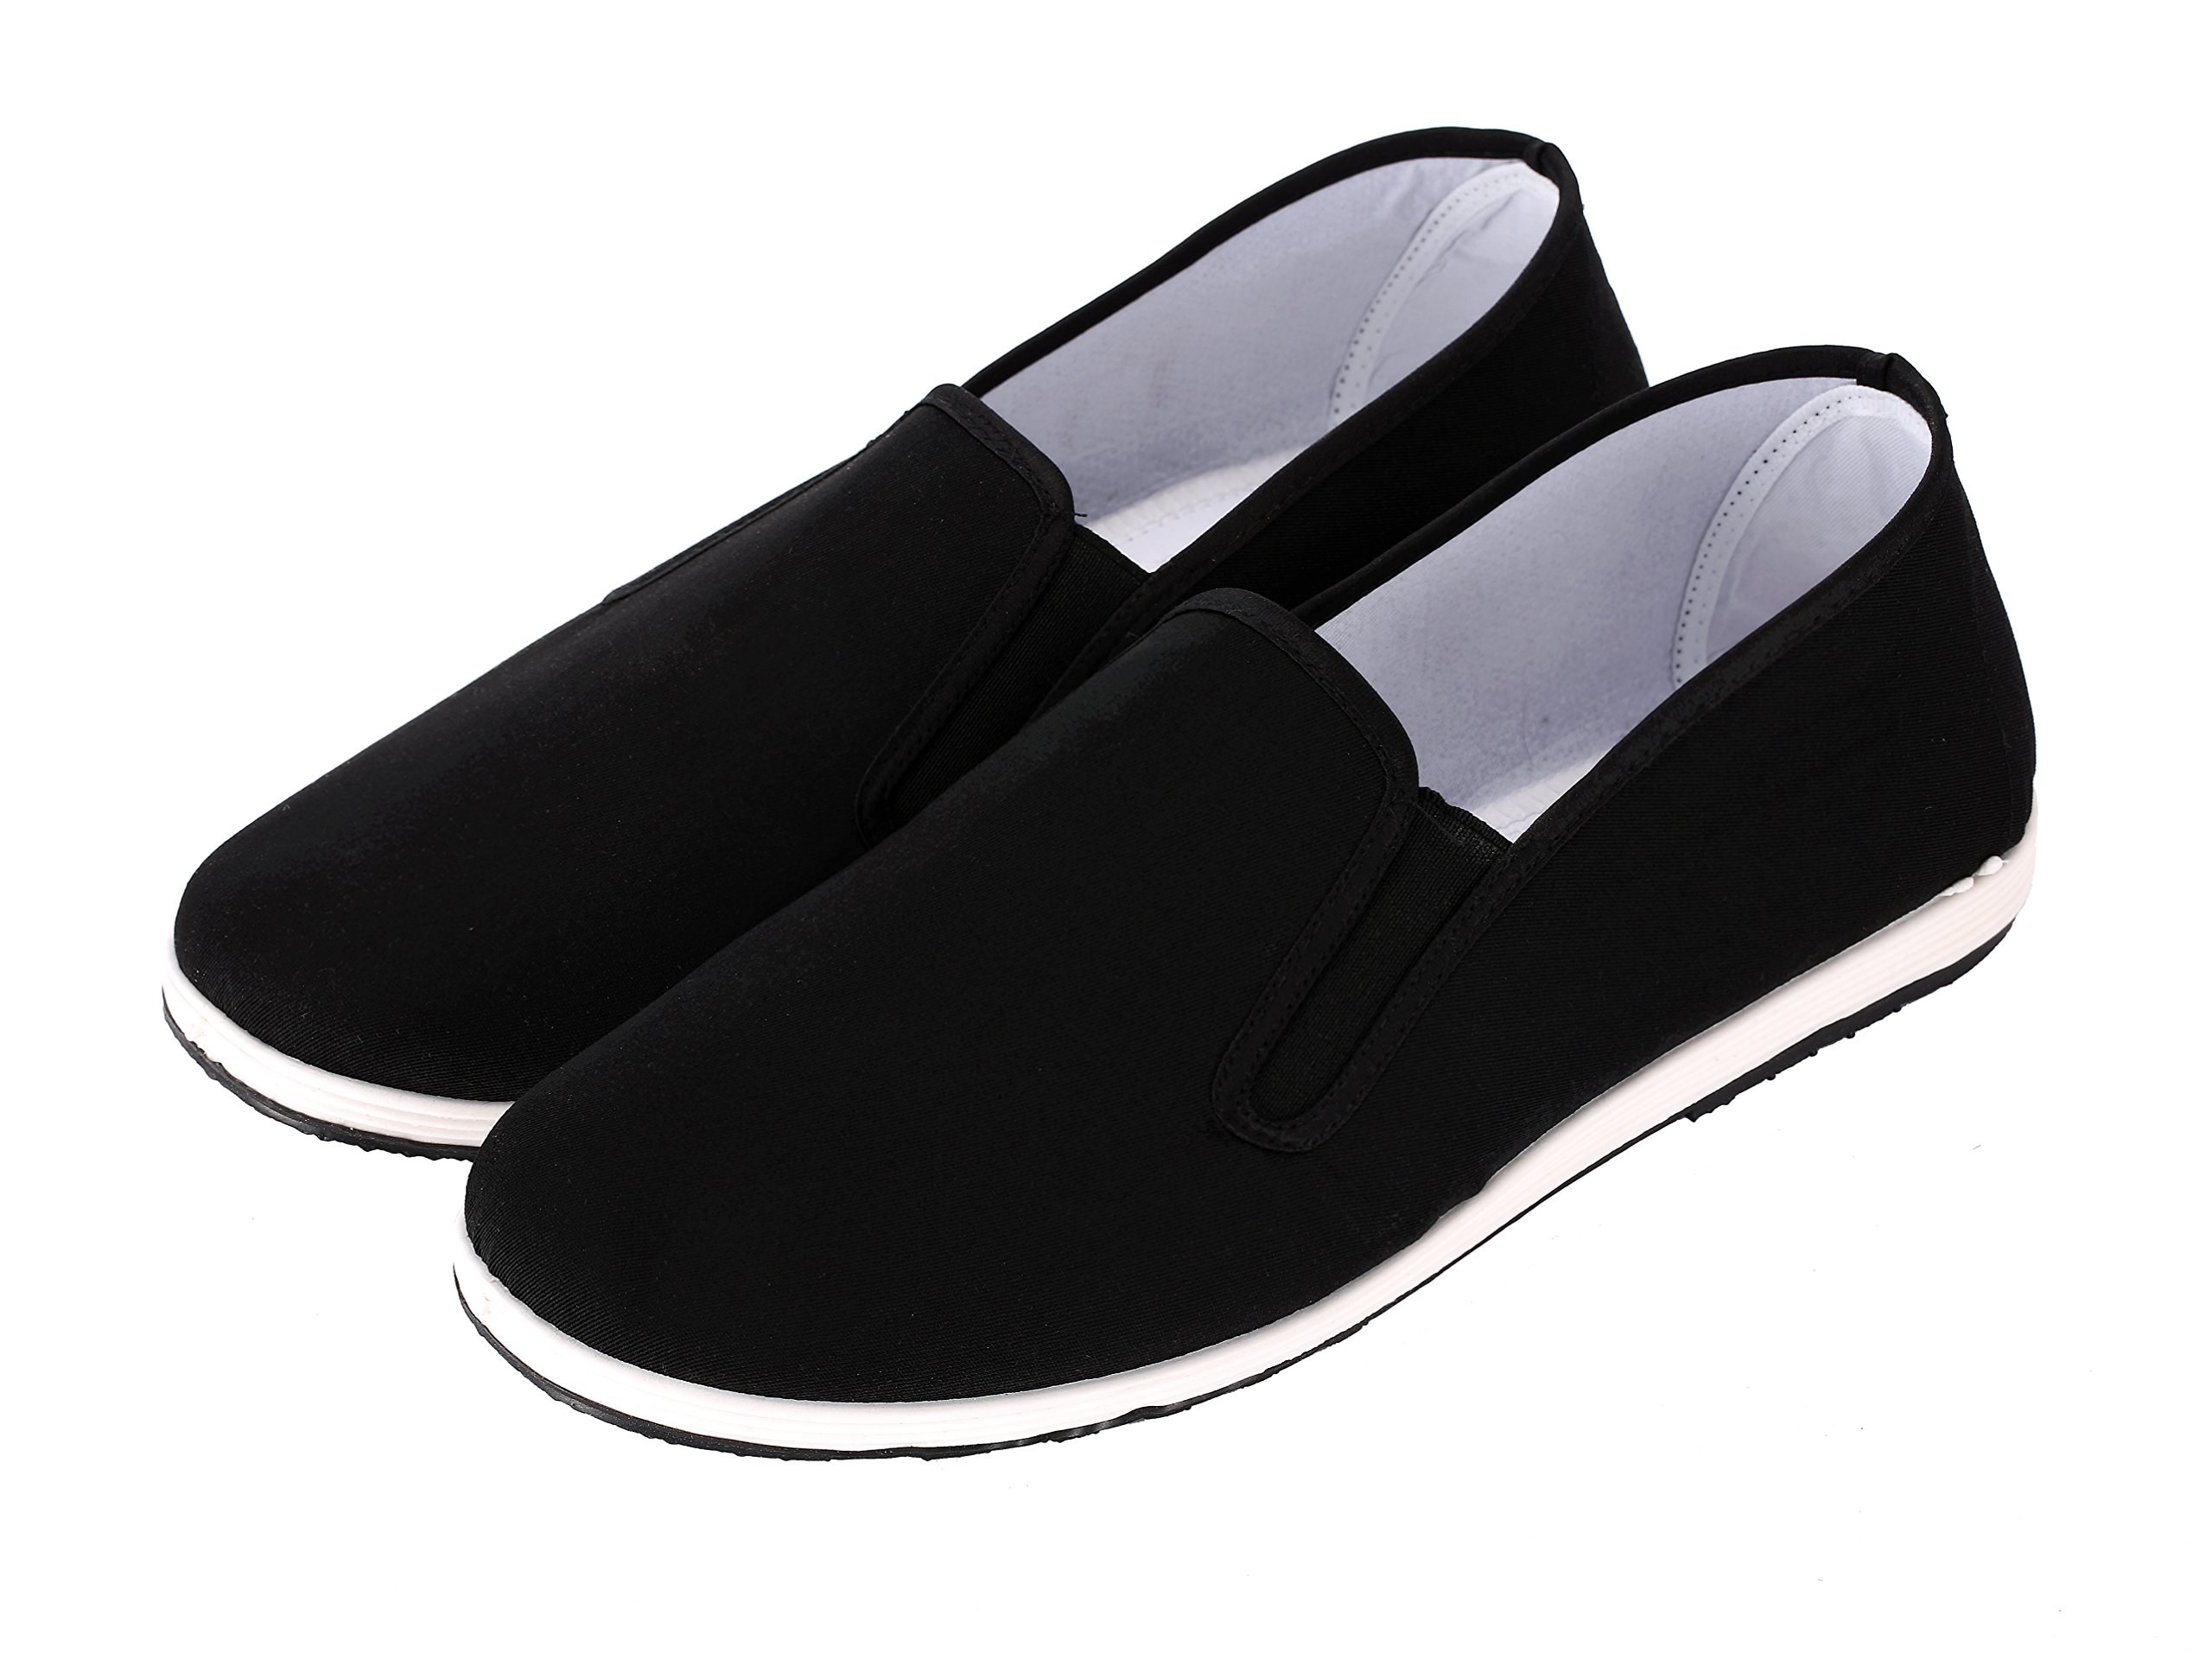 Aircee Men Chinese Traditional Old Beijing Shoes Kung Fu Tai Chi Rubber Sole Shoes Black (CHN 38 240mm (US Men 6/Women 6.5), 1-Black)